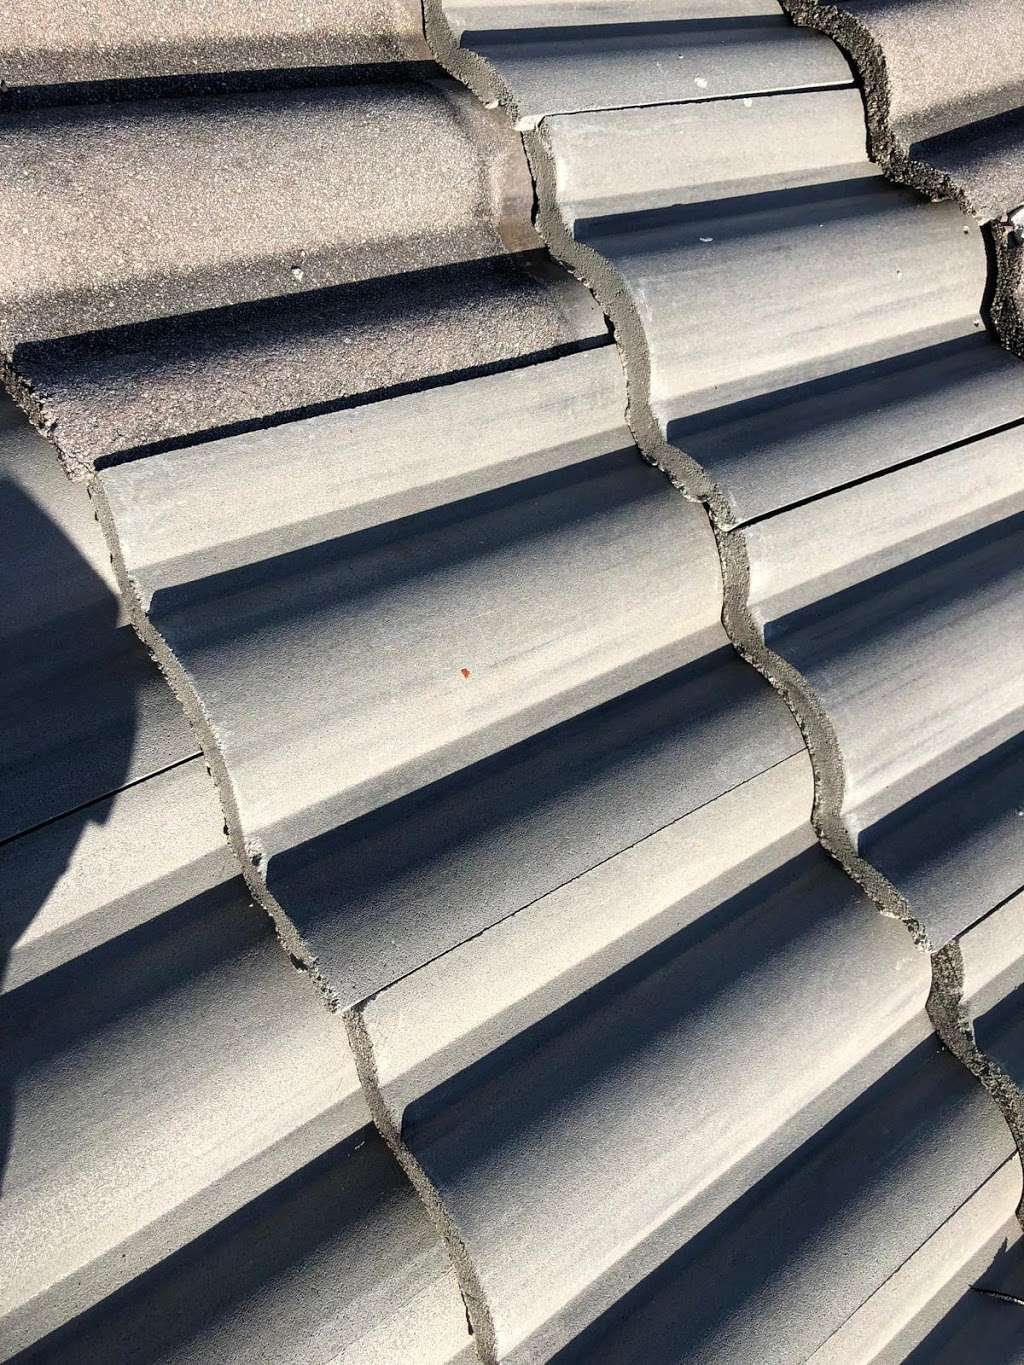 Mediterranean Roof Tiles - store    Photo 8 of 10   Address: 9060 NW 97th Terrace, Medley, FL 33178, USA   Phone: (305) 887-7055